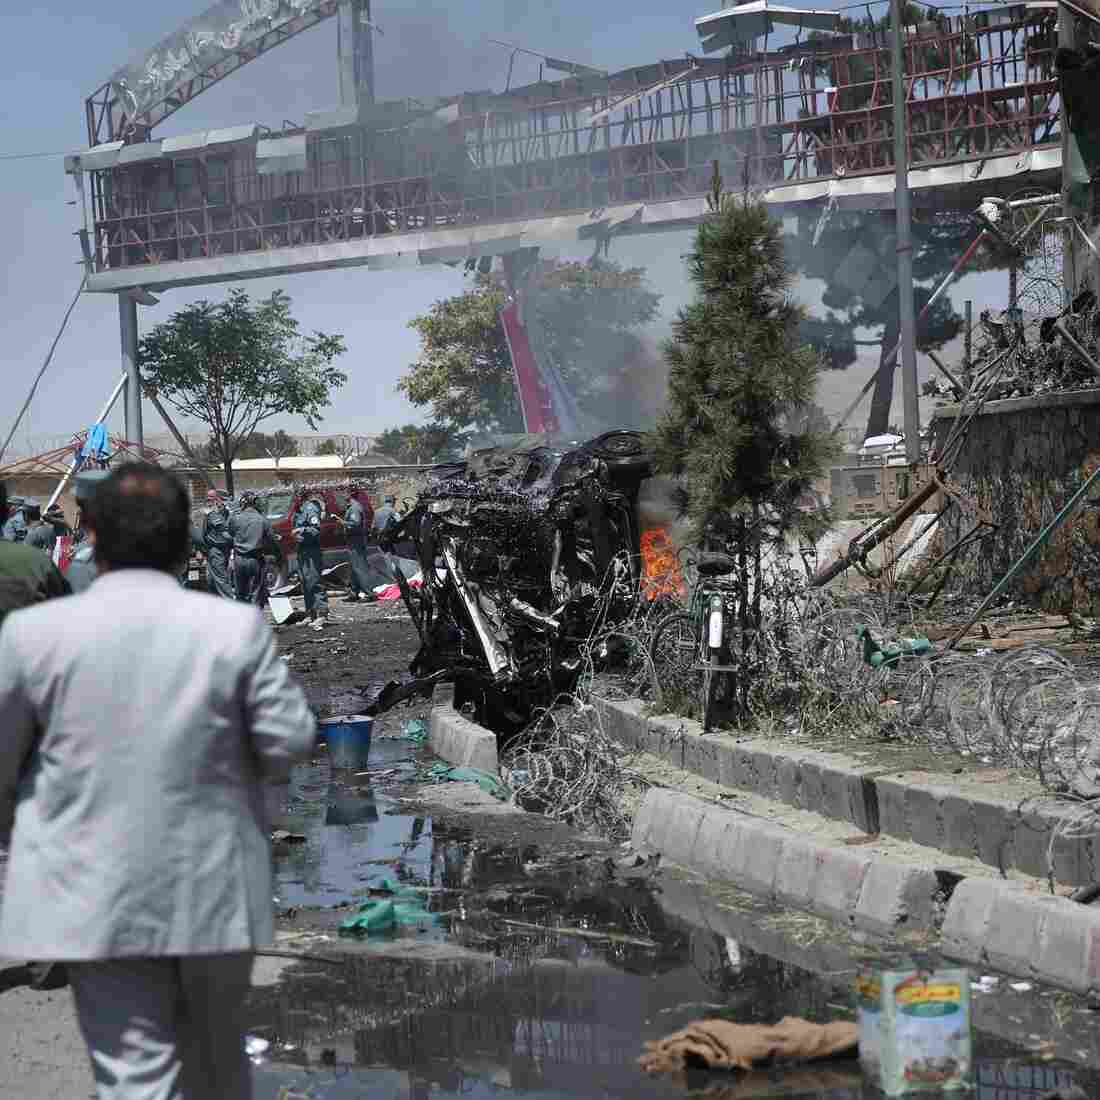 Afghan security forces inspect a suicide bombing attack on Aug. 10 near the main gate of Kabul's international airport. It was one of a series of recent attacks in the Afghan capital that have left at least 50 dead. Violence in Afghanistan has increased since U.S. combat troops pulled out last year.